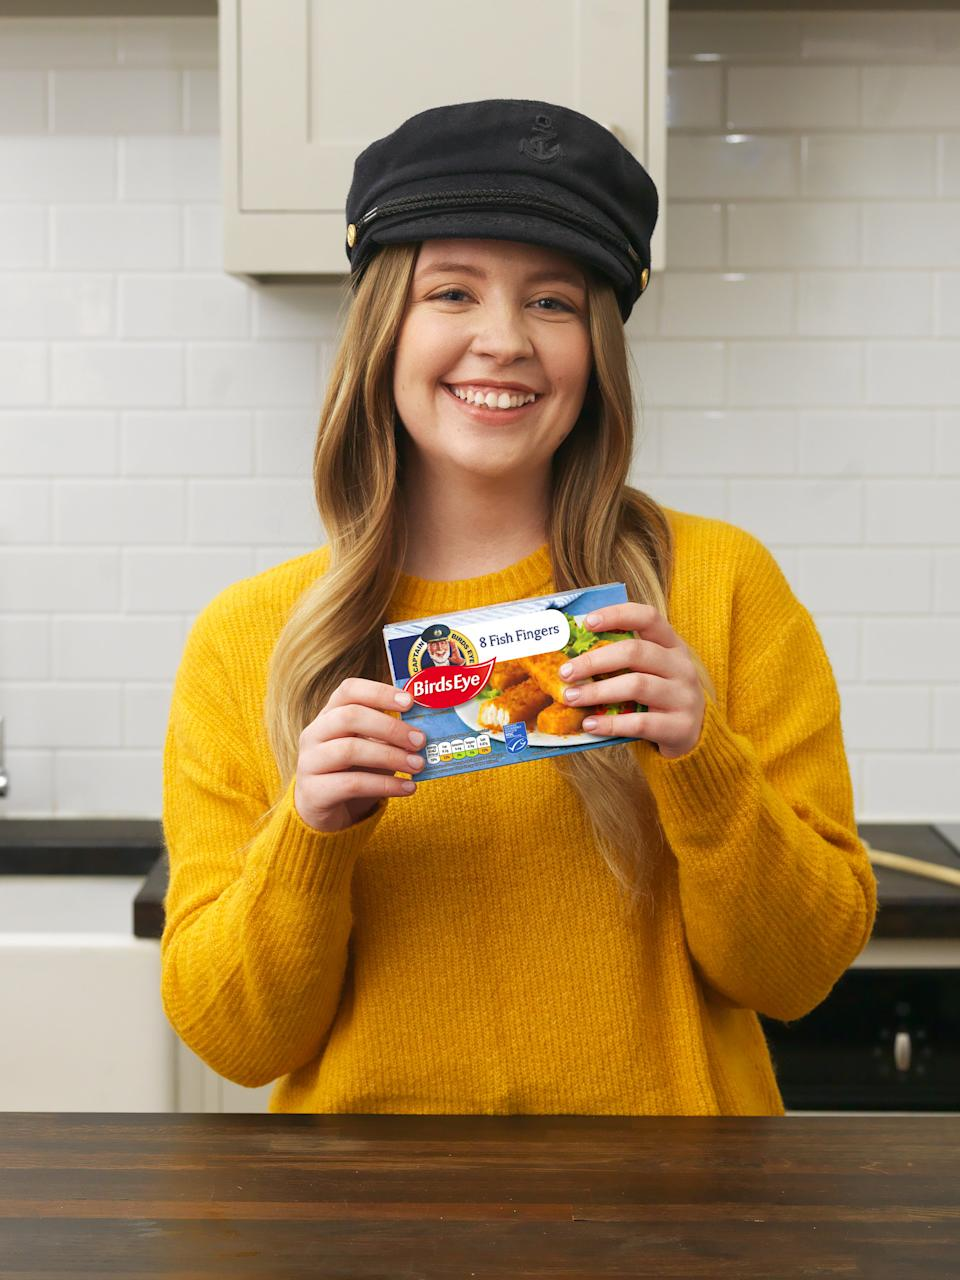 Carter-Dunn, 24, from Gloucestershire beat 500 other people to be crowned the winner of a nationwide competition. (SWNS)